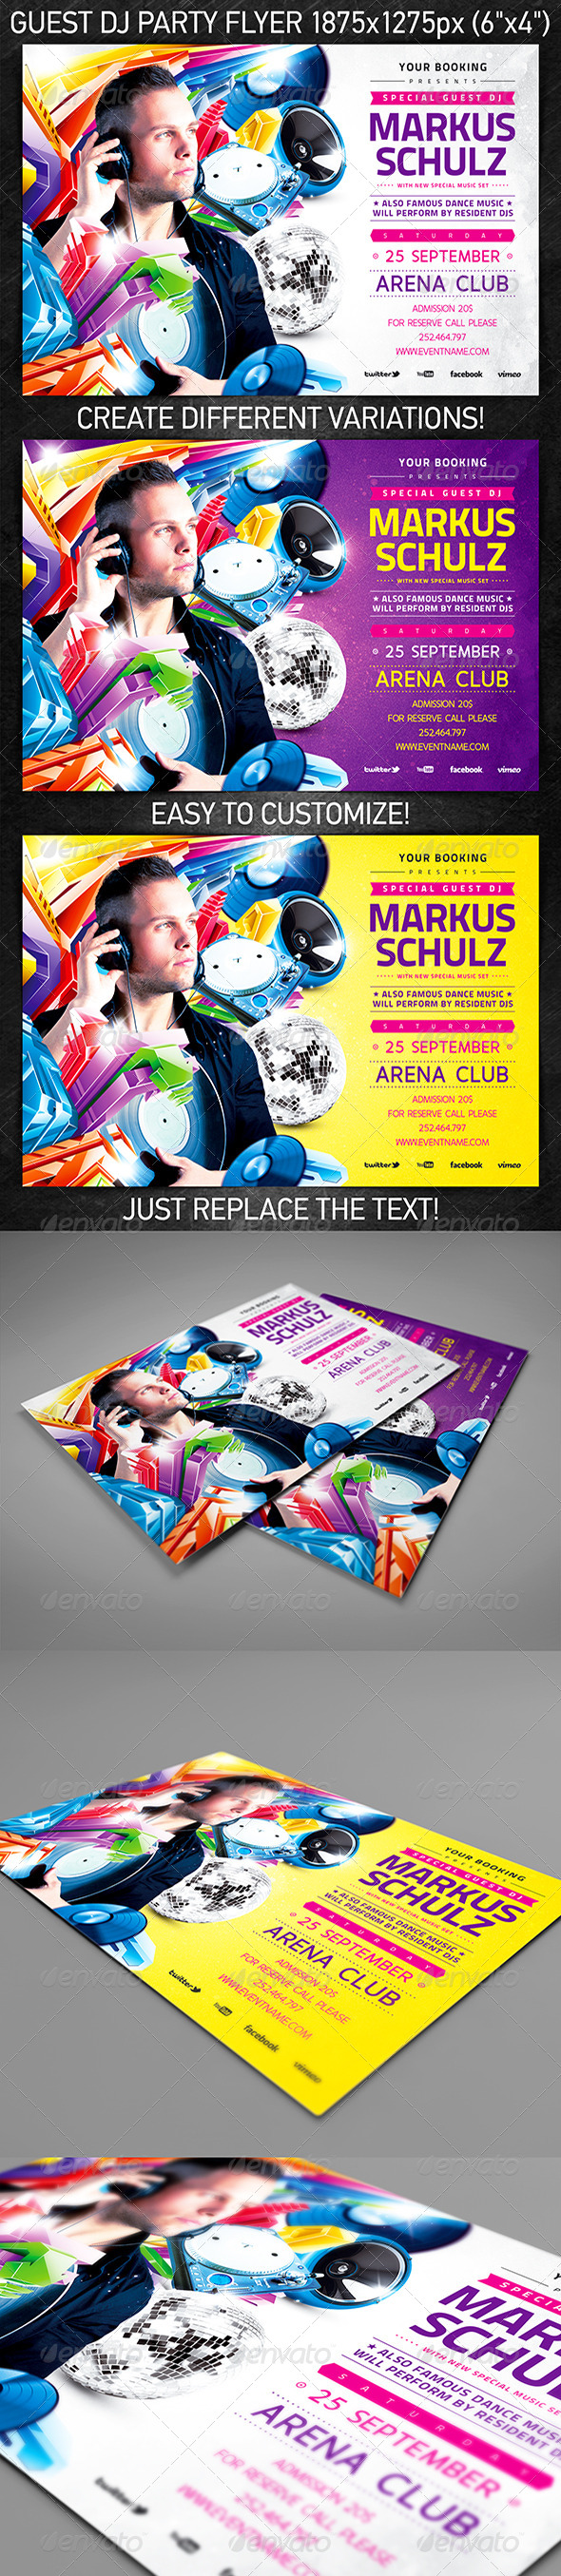 Guest DJ Party Flyer Vol.2 - Clubs & Parties Events